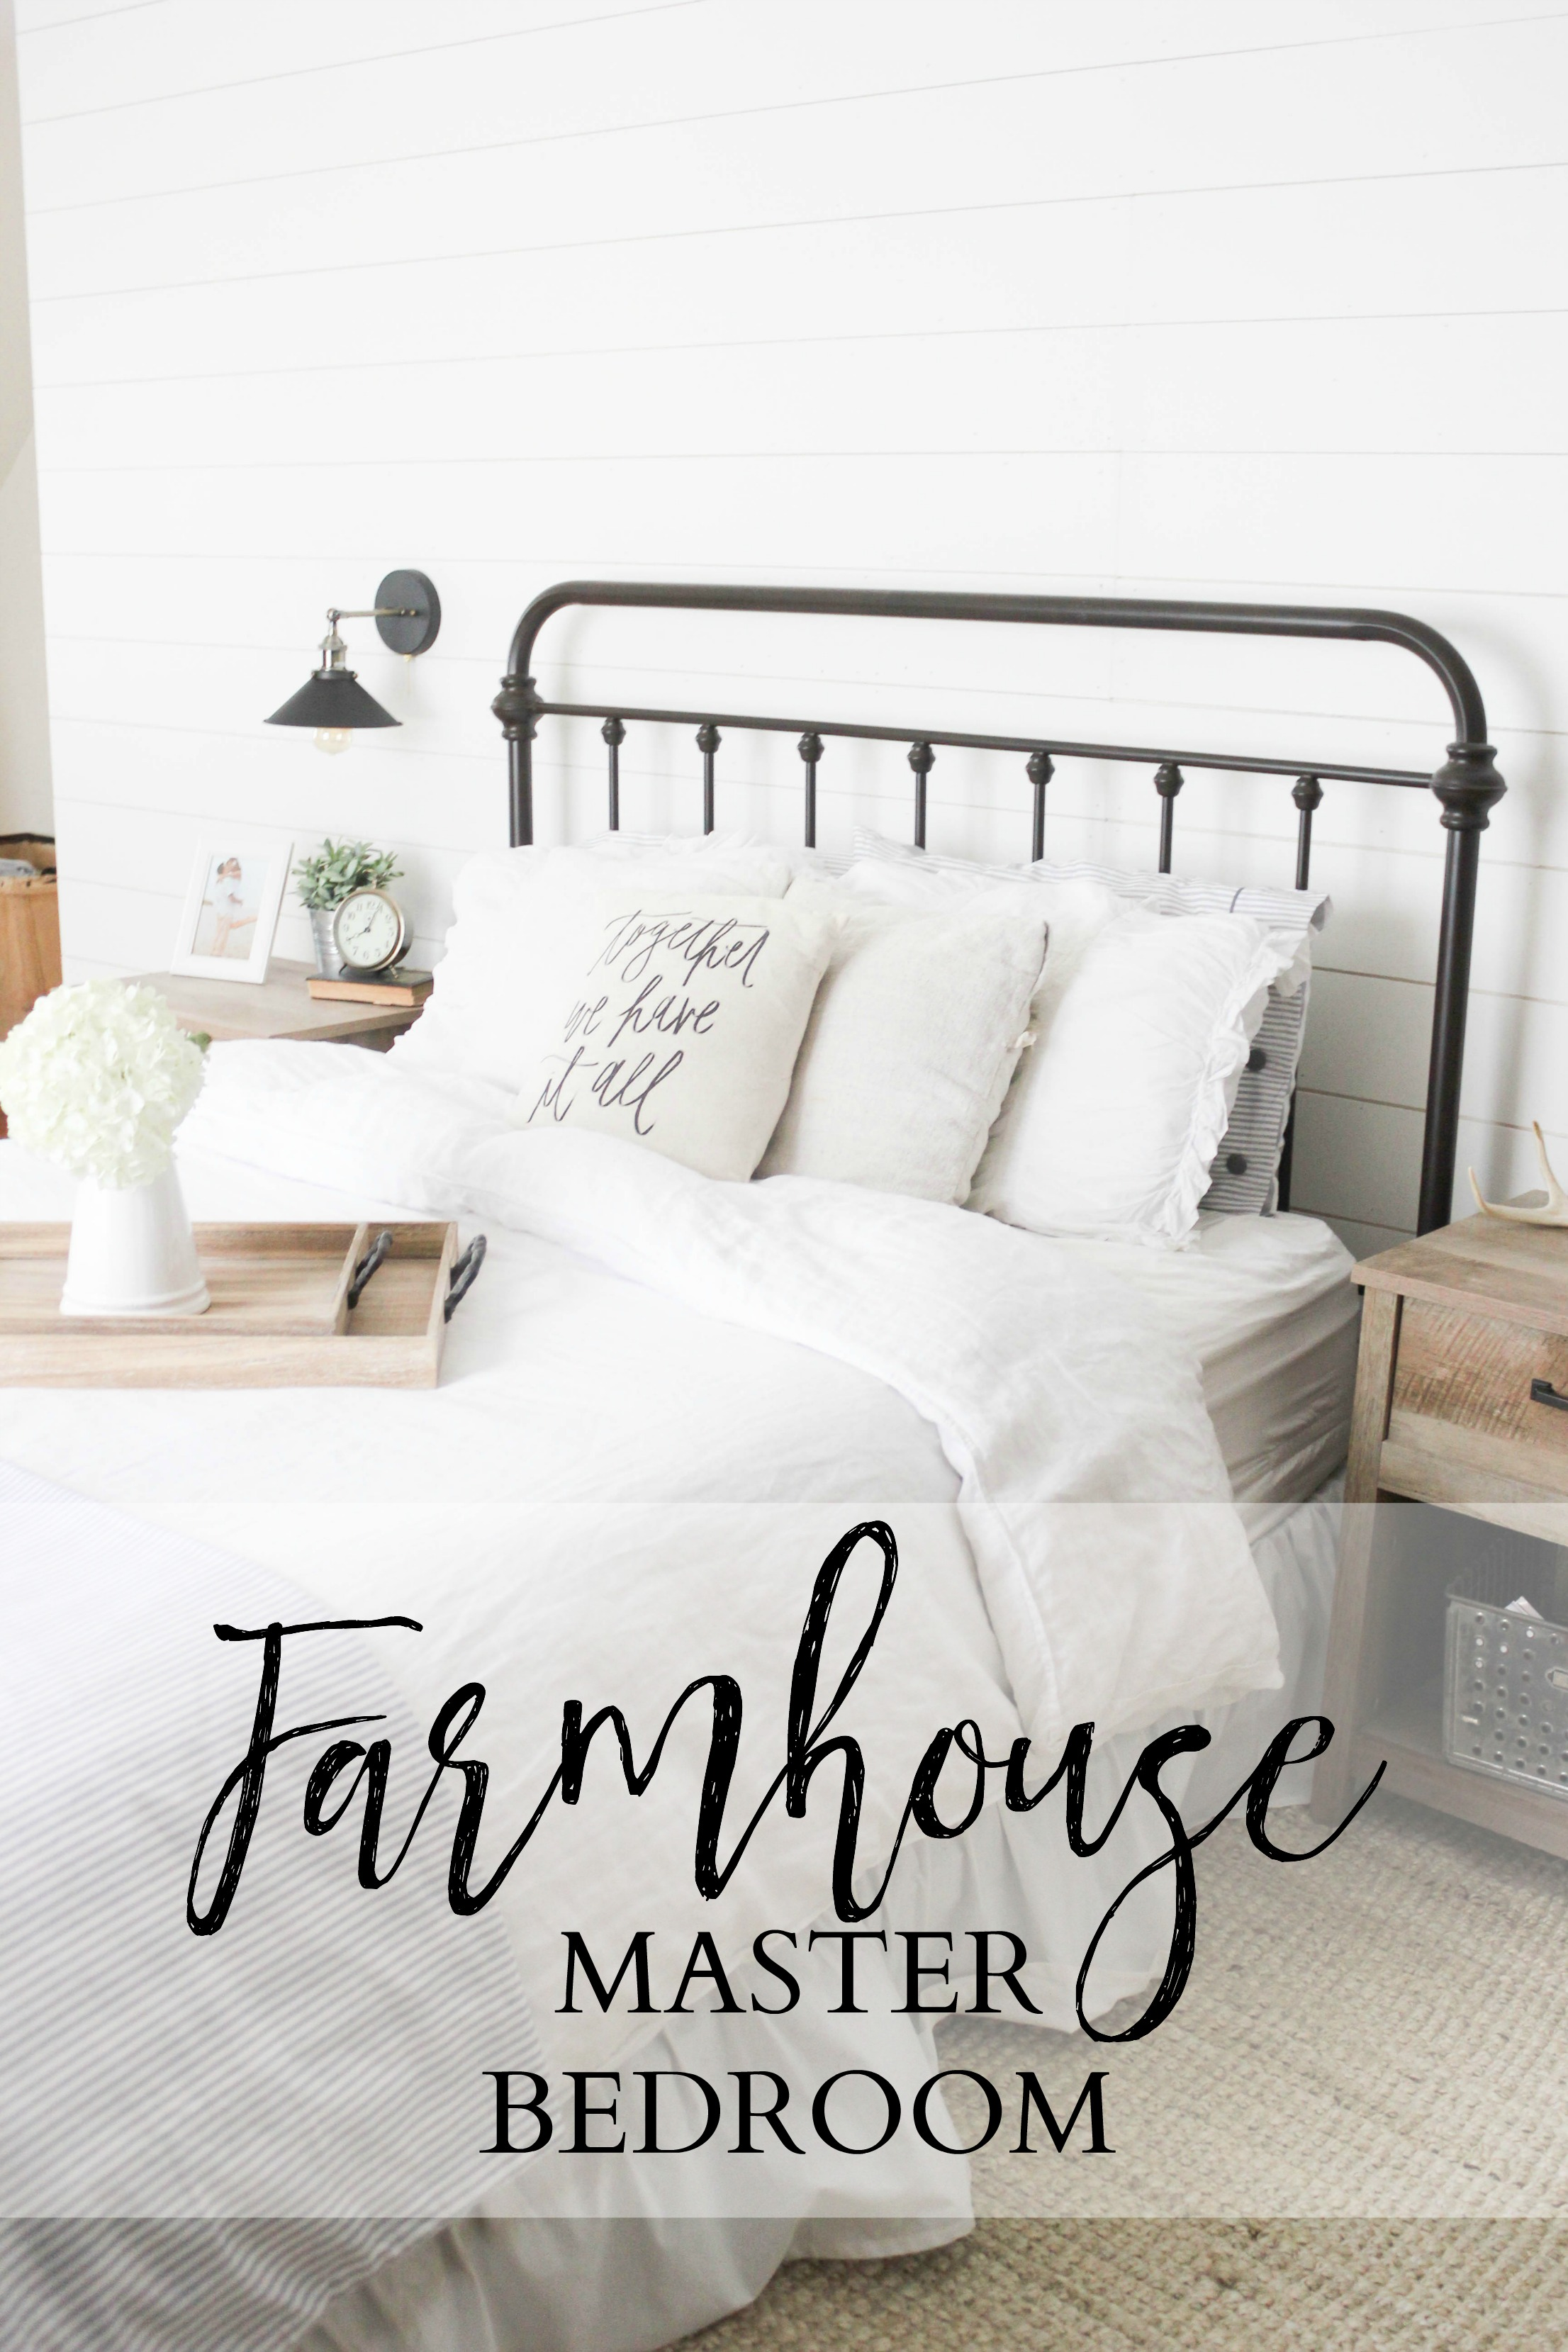 Home Farmhouse Master Bedroom